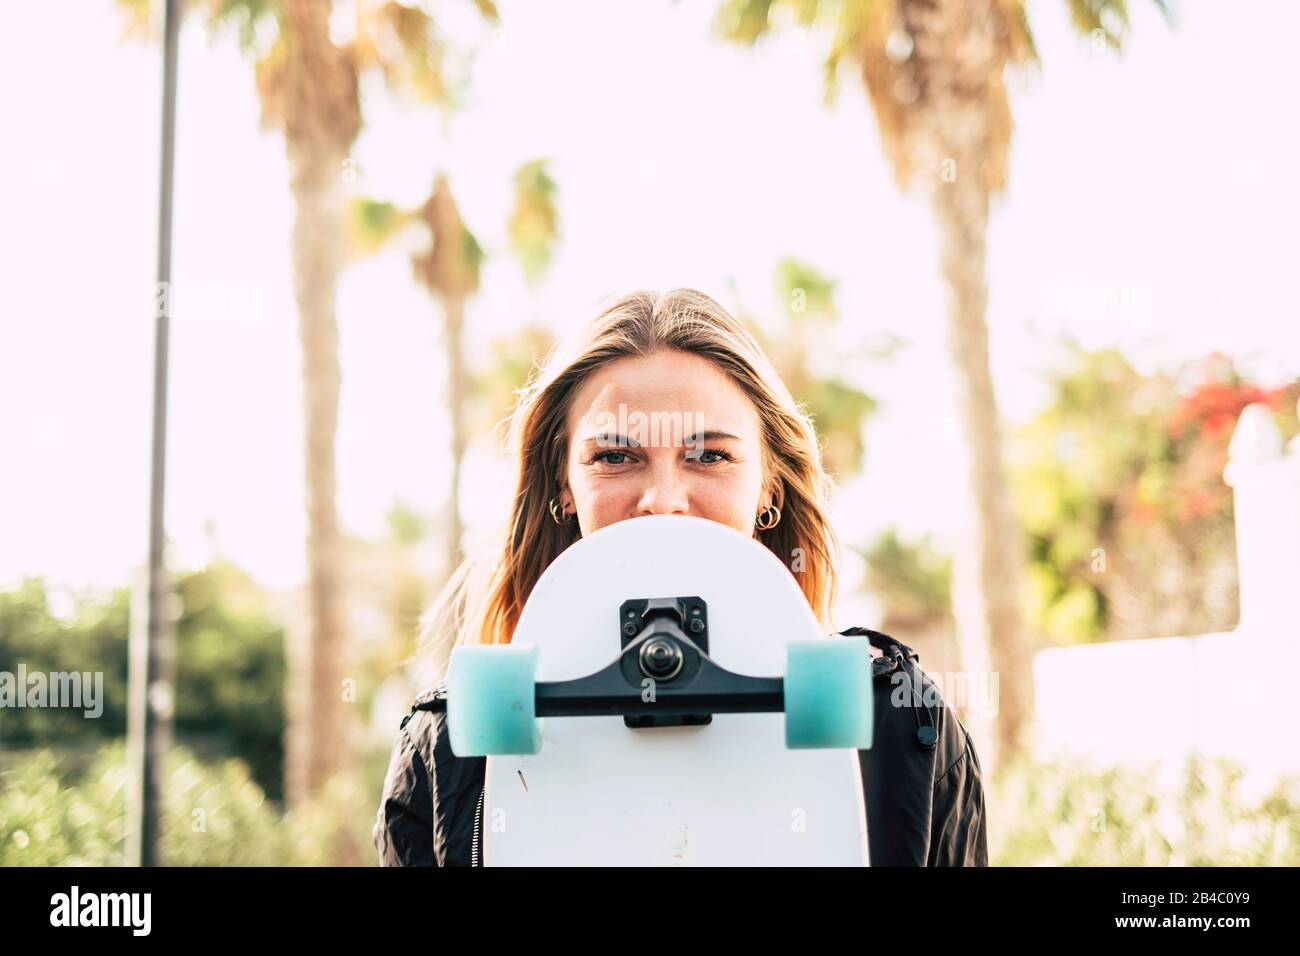 Modern cheerful beautiful blonde girl portrait with skateboard covering part of the pretty face - young millennial people outdoor concept enjoying lifestyle and sunny days Stock Photo